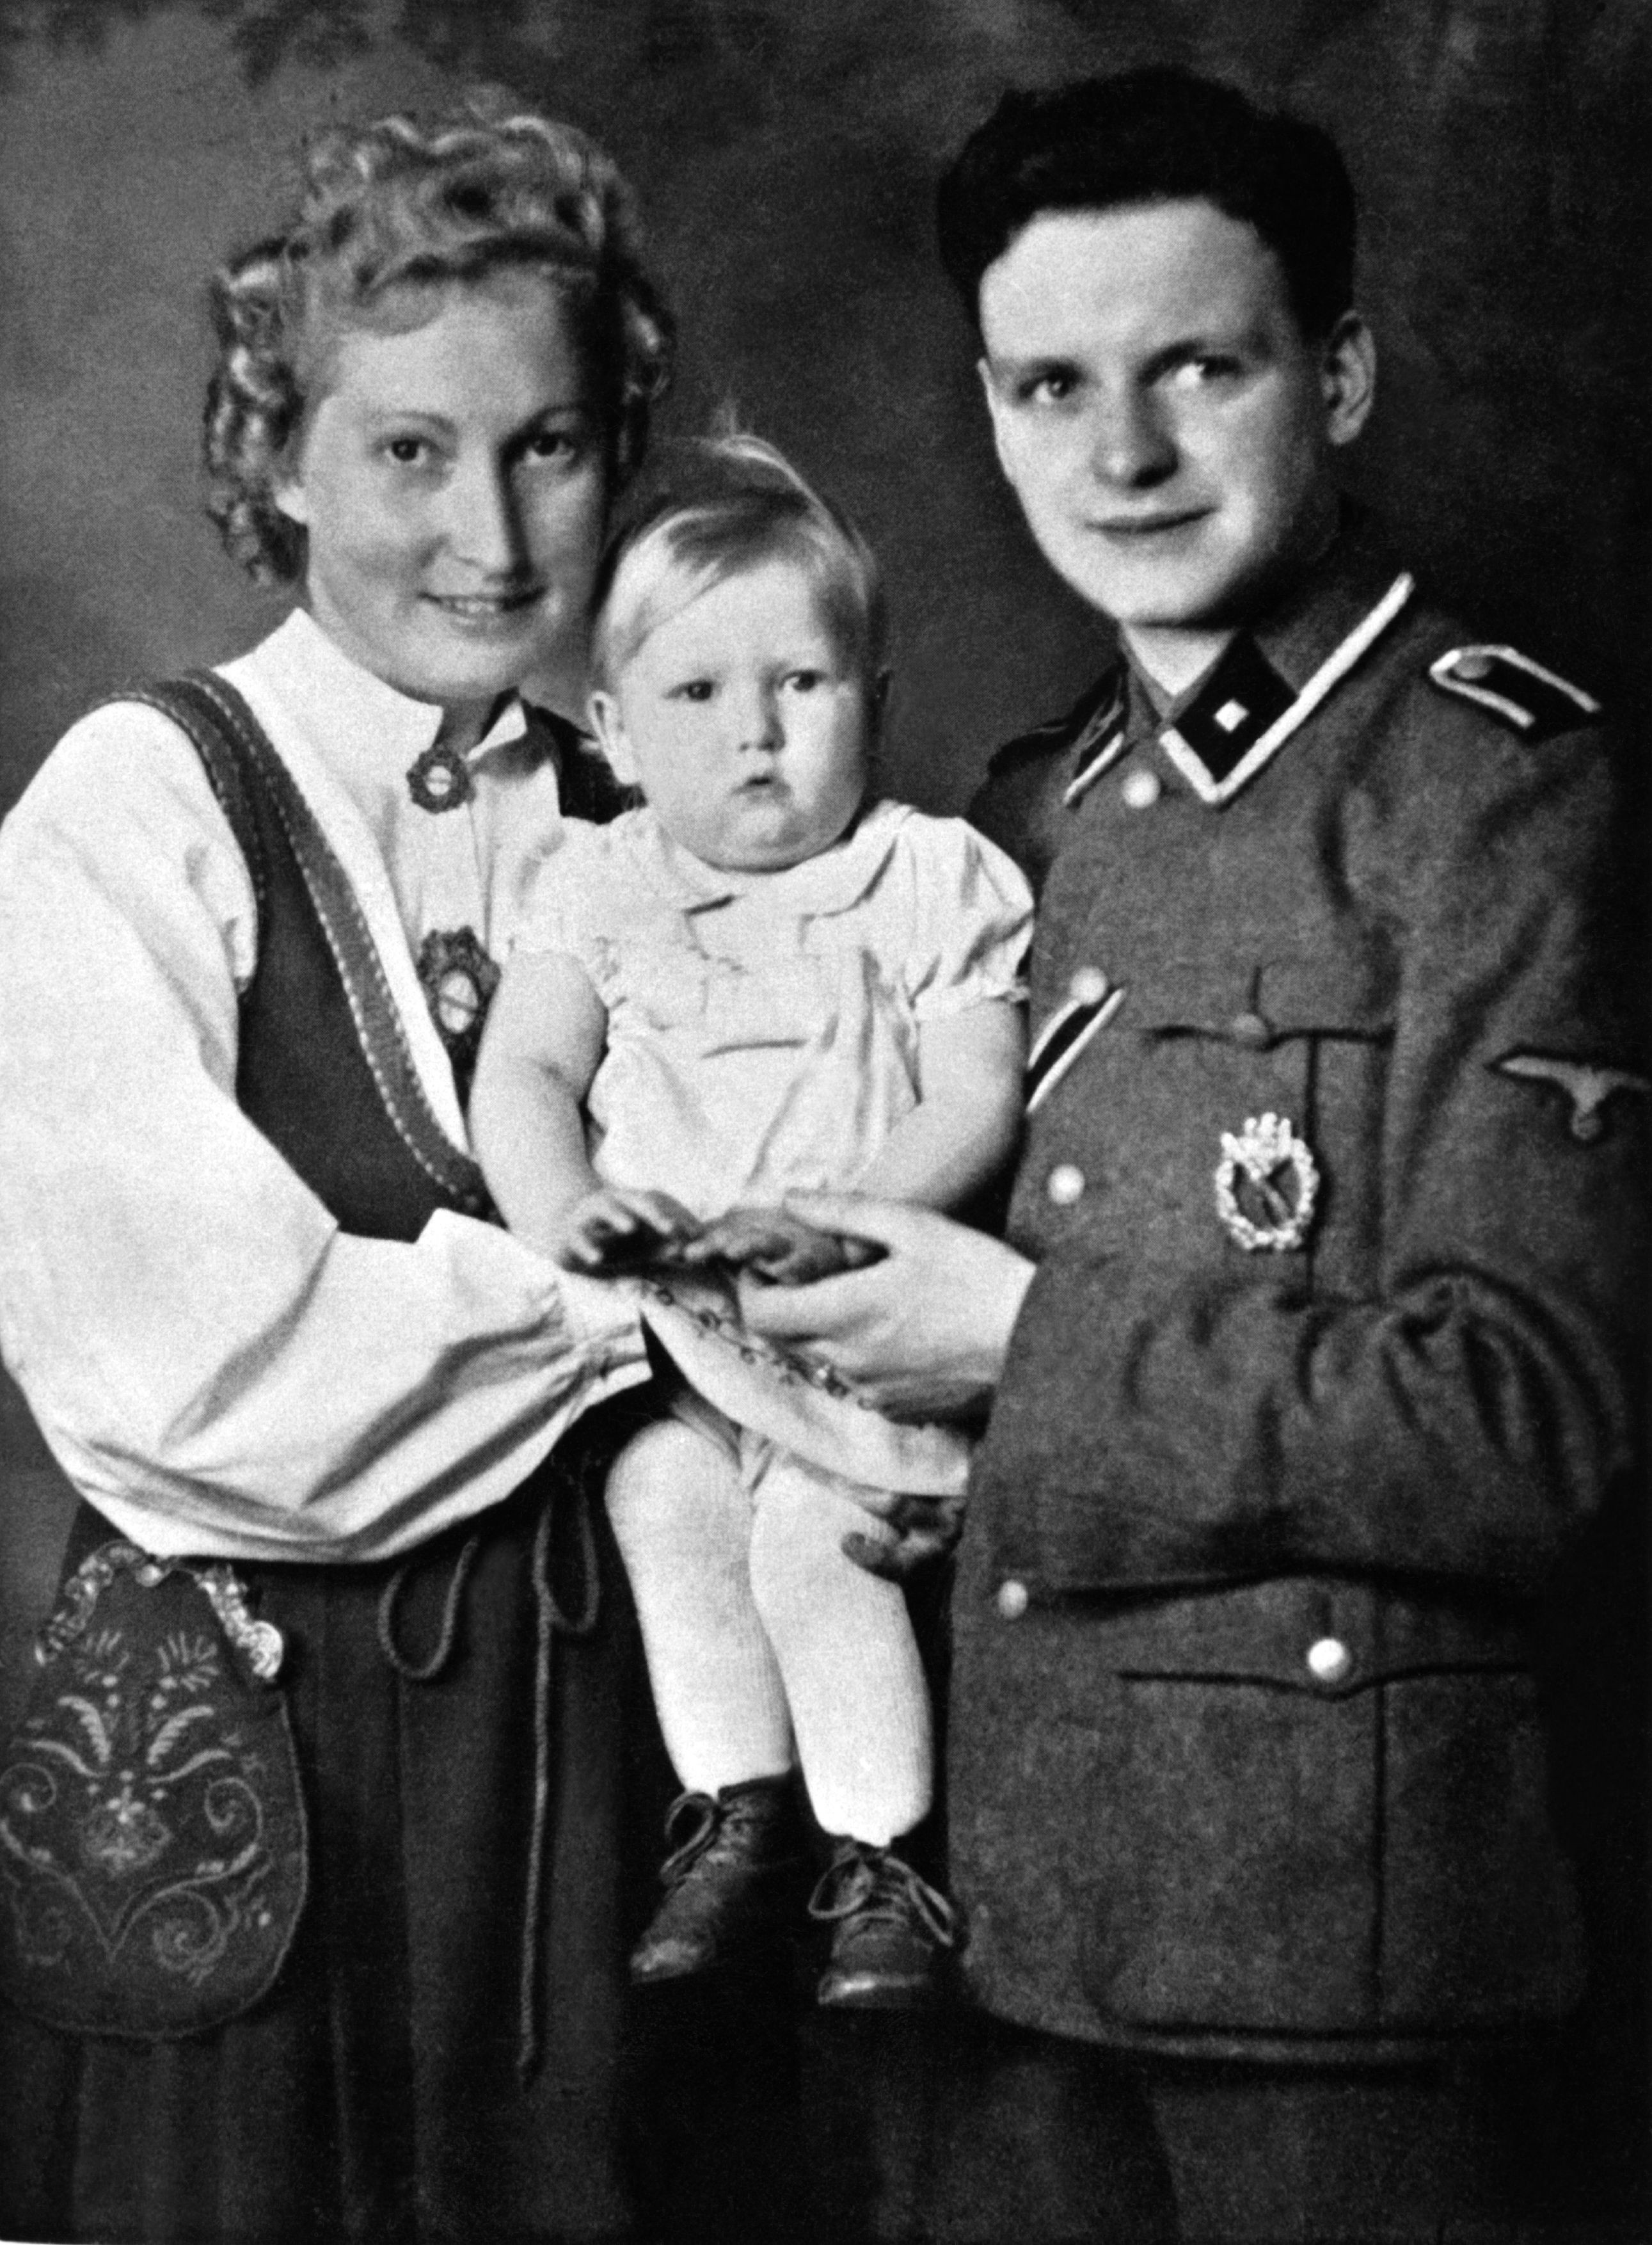 Heres What to Know About Lebensborn, the Nazi Human